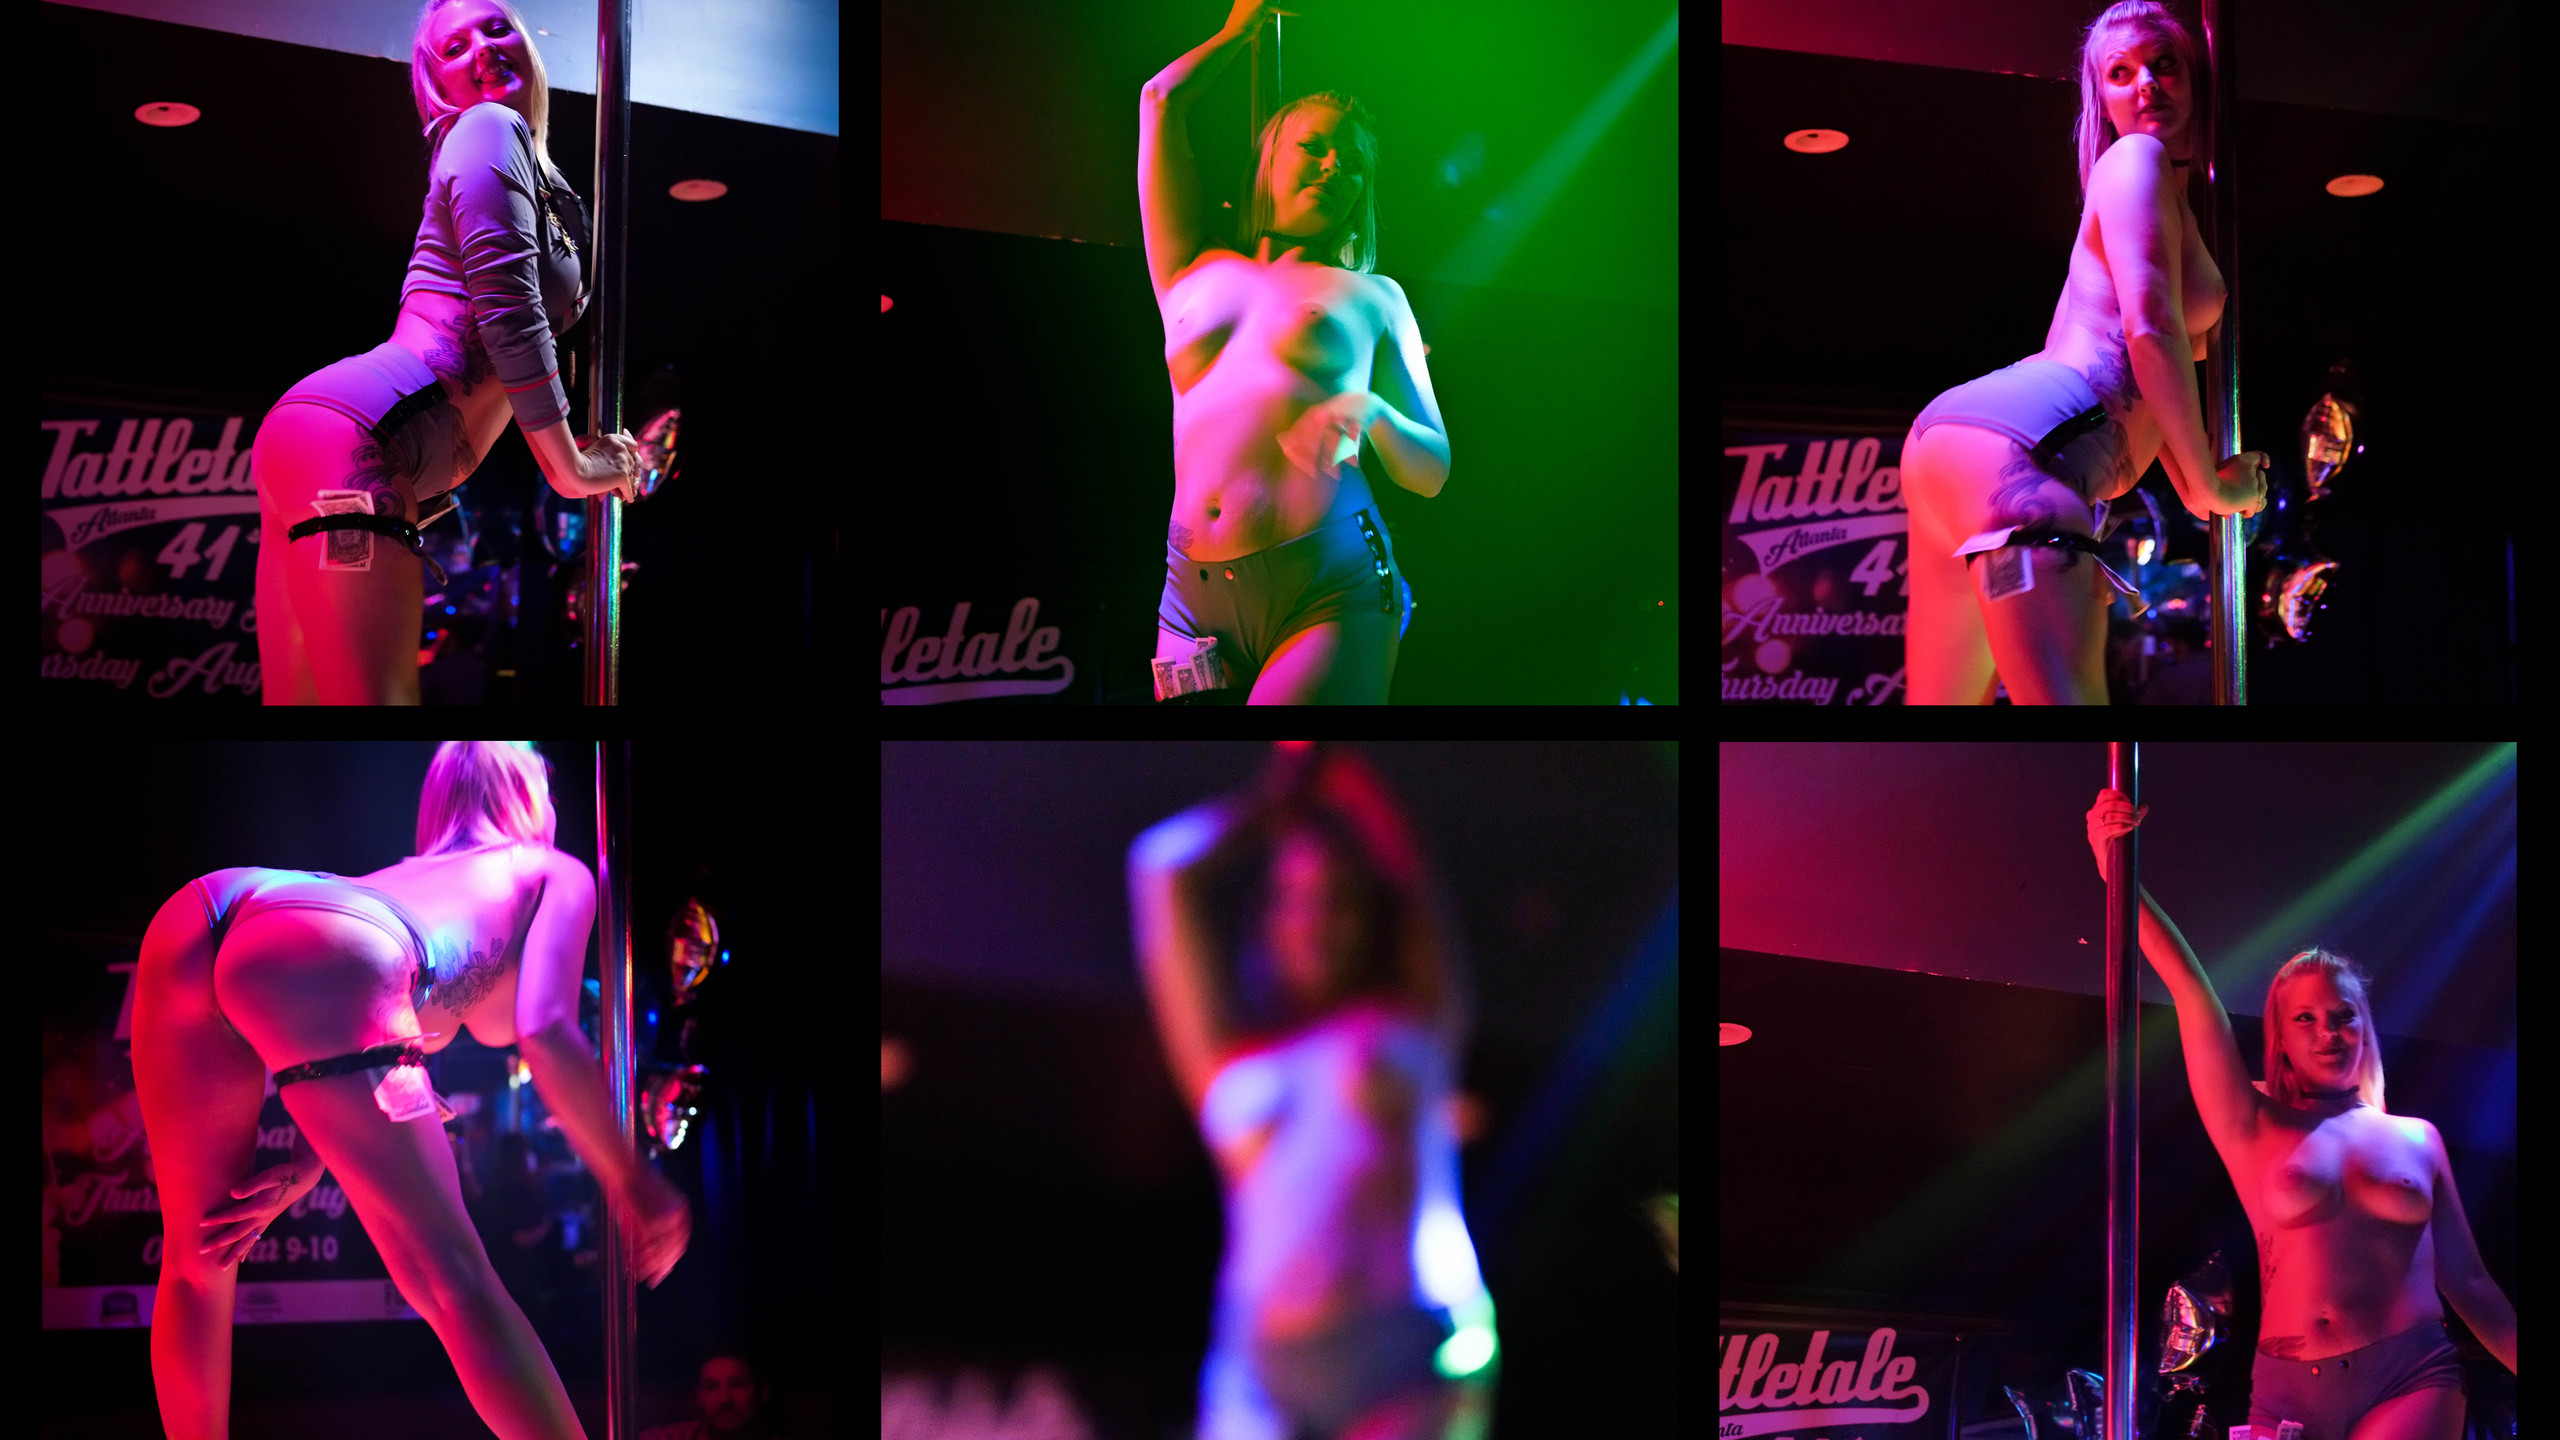 A collection of shots of Summer bathed in a pink glow during her performance.